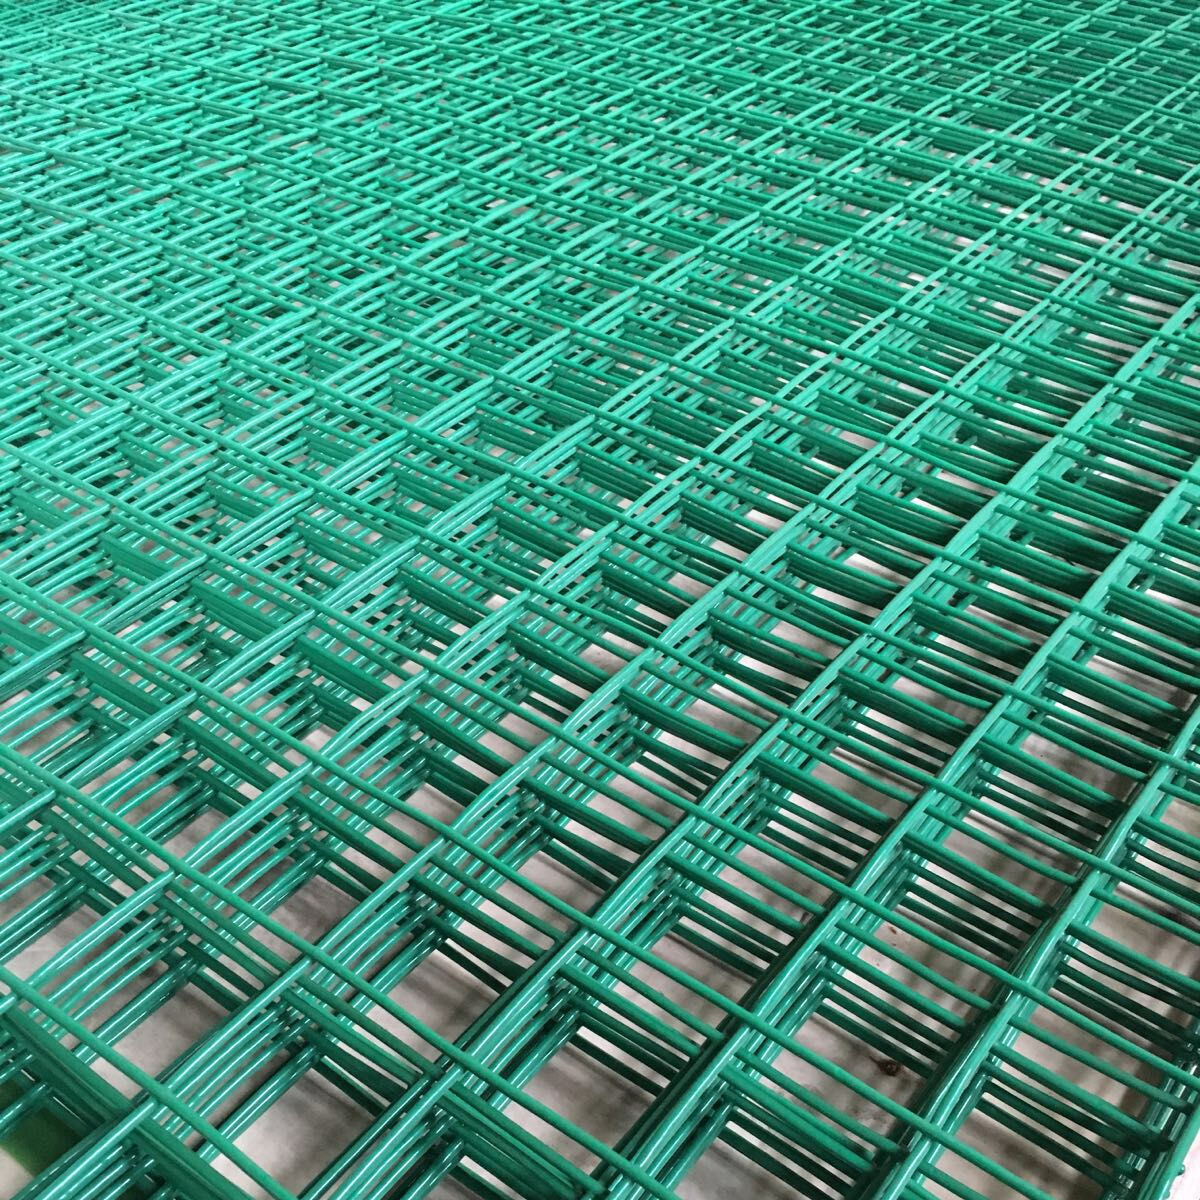 6FT X 3FT Green PVC Coated Wire Mesh Panels Sheet 1\